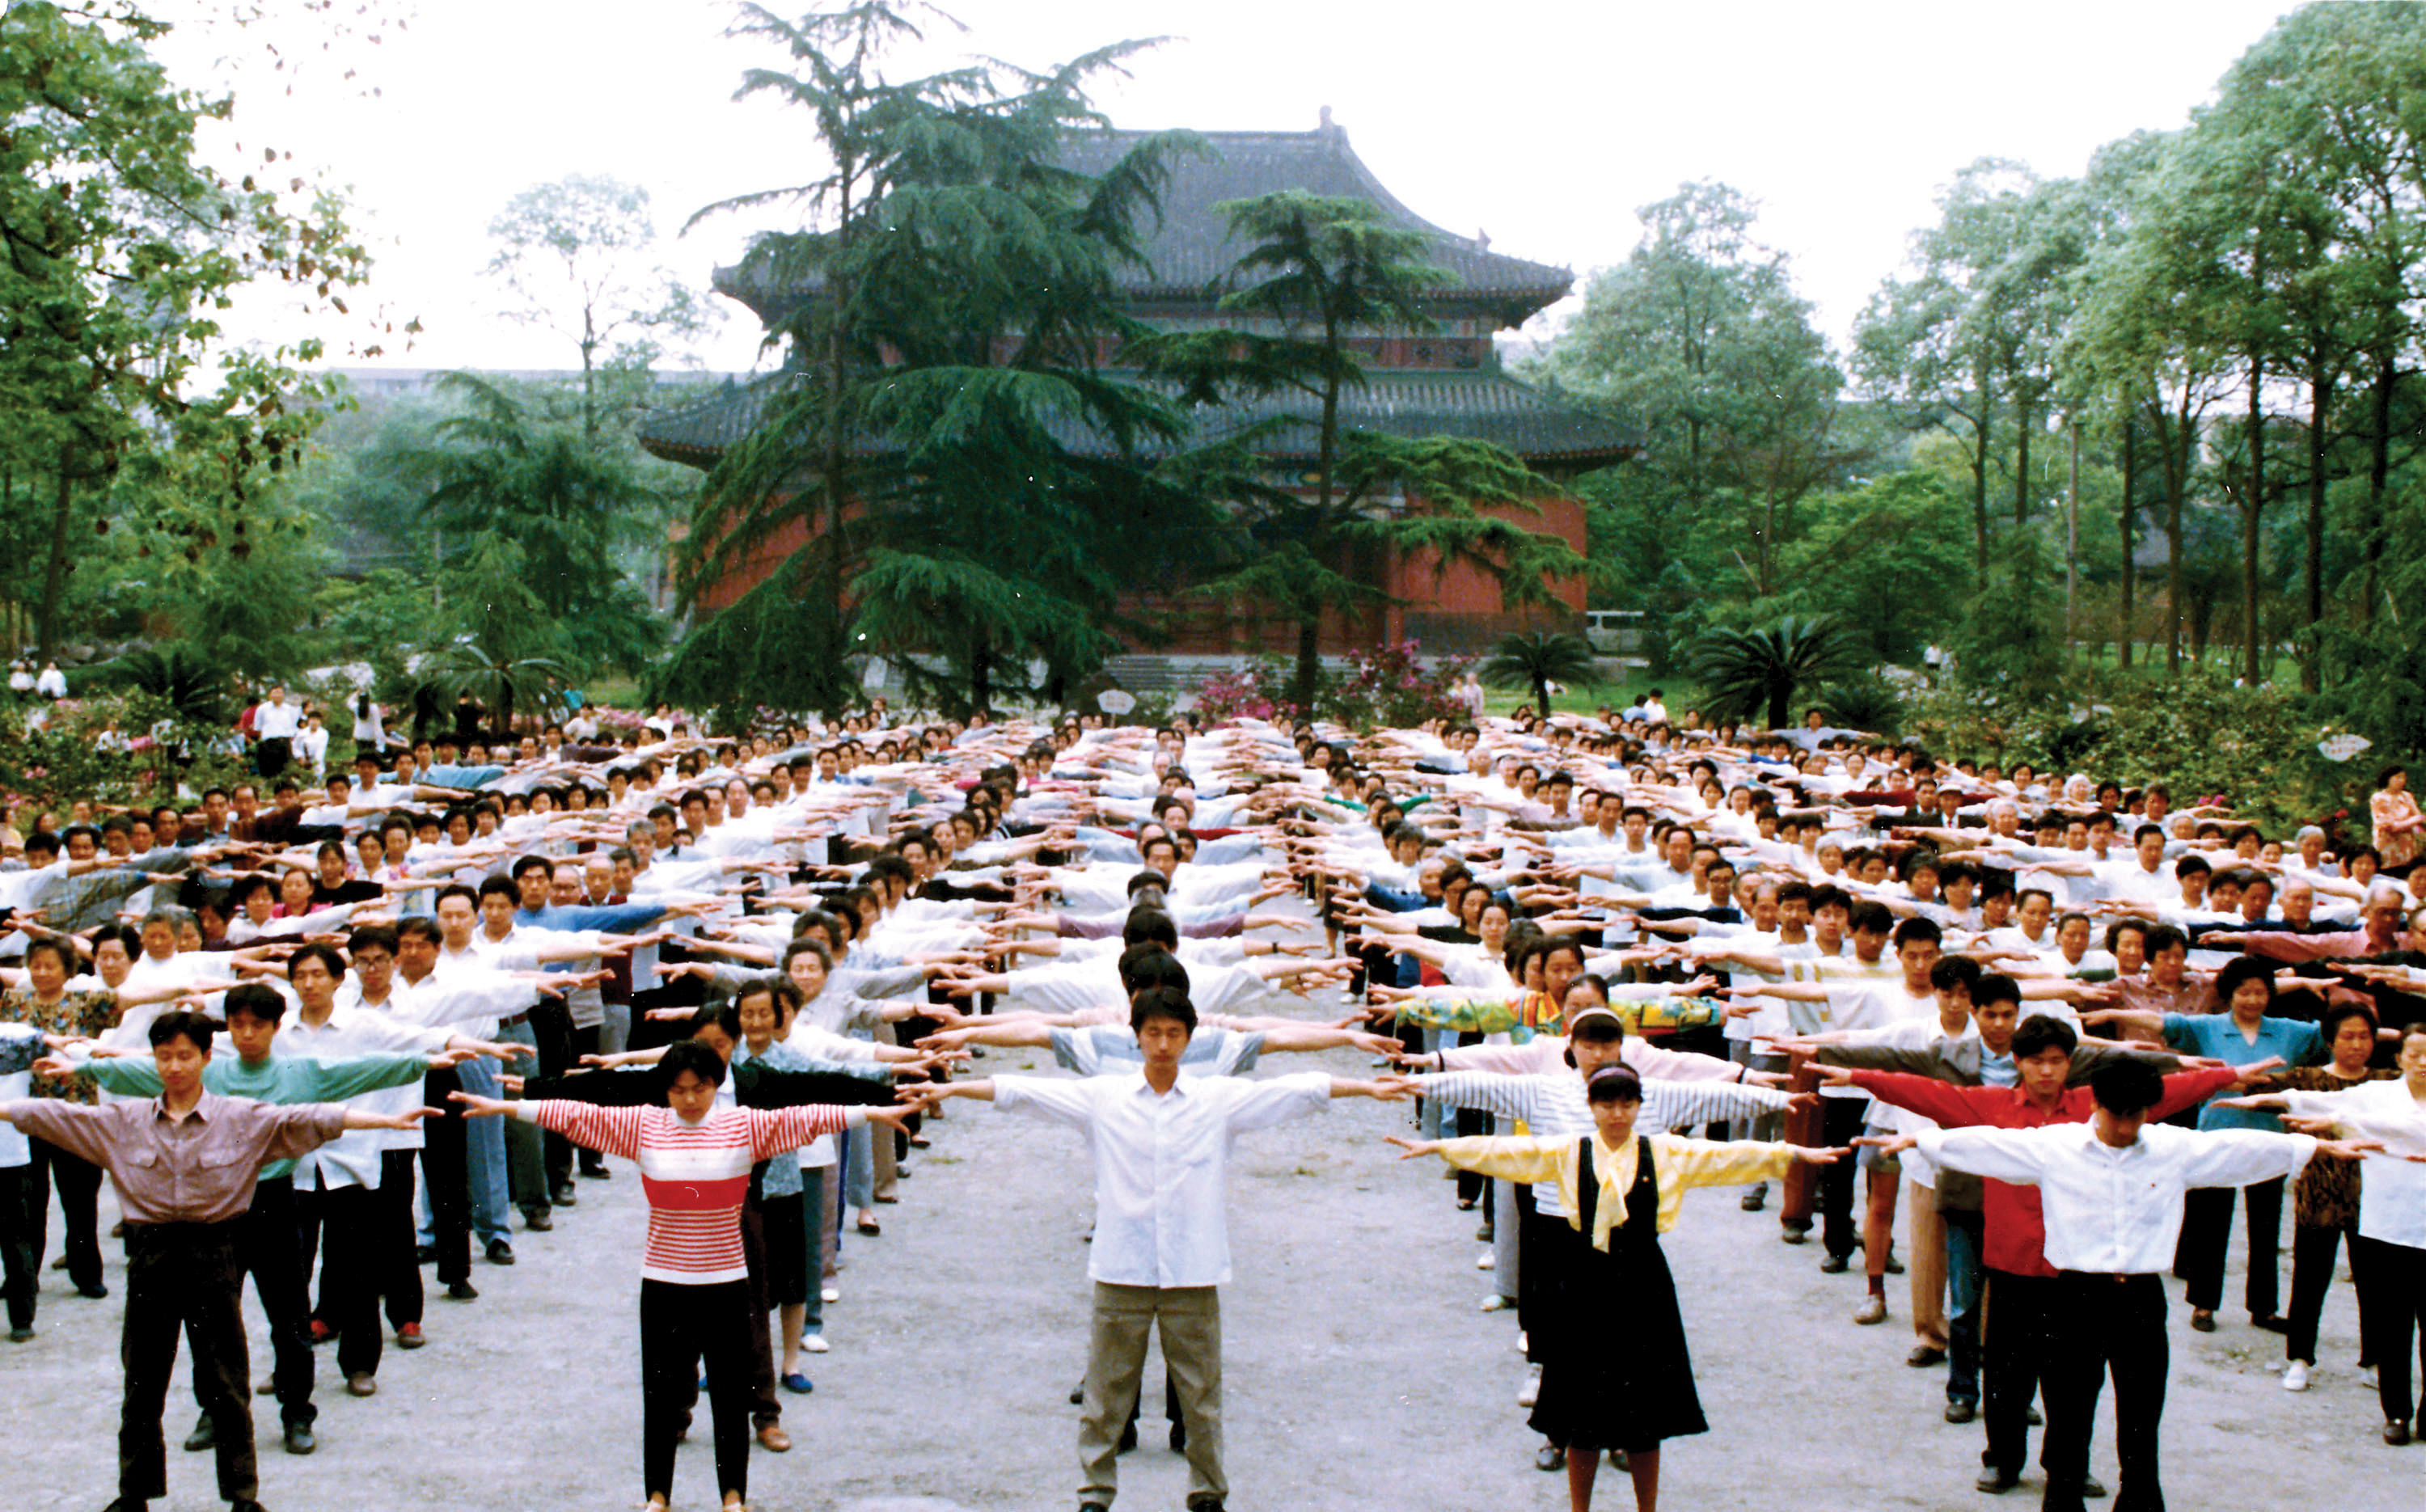 Practitioners used to gather every morning to practice Falun Gong in Chengdu, the capital of Sichuan Province.